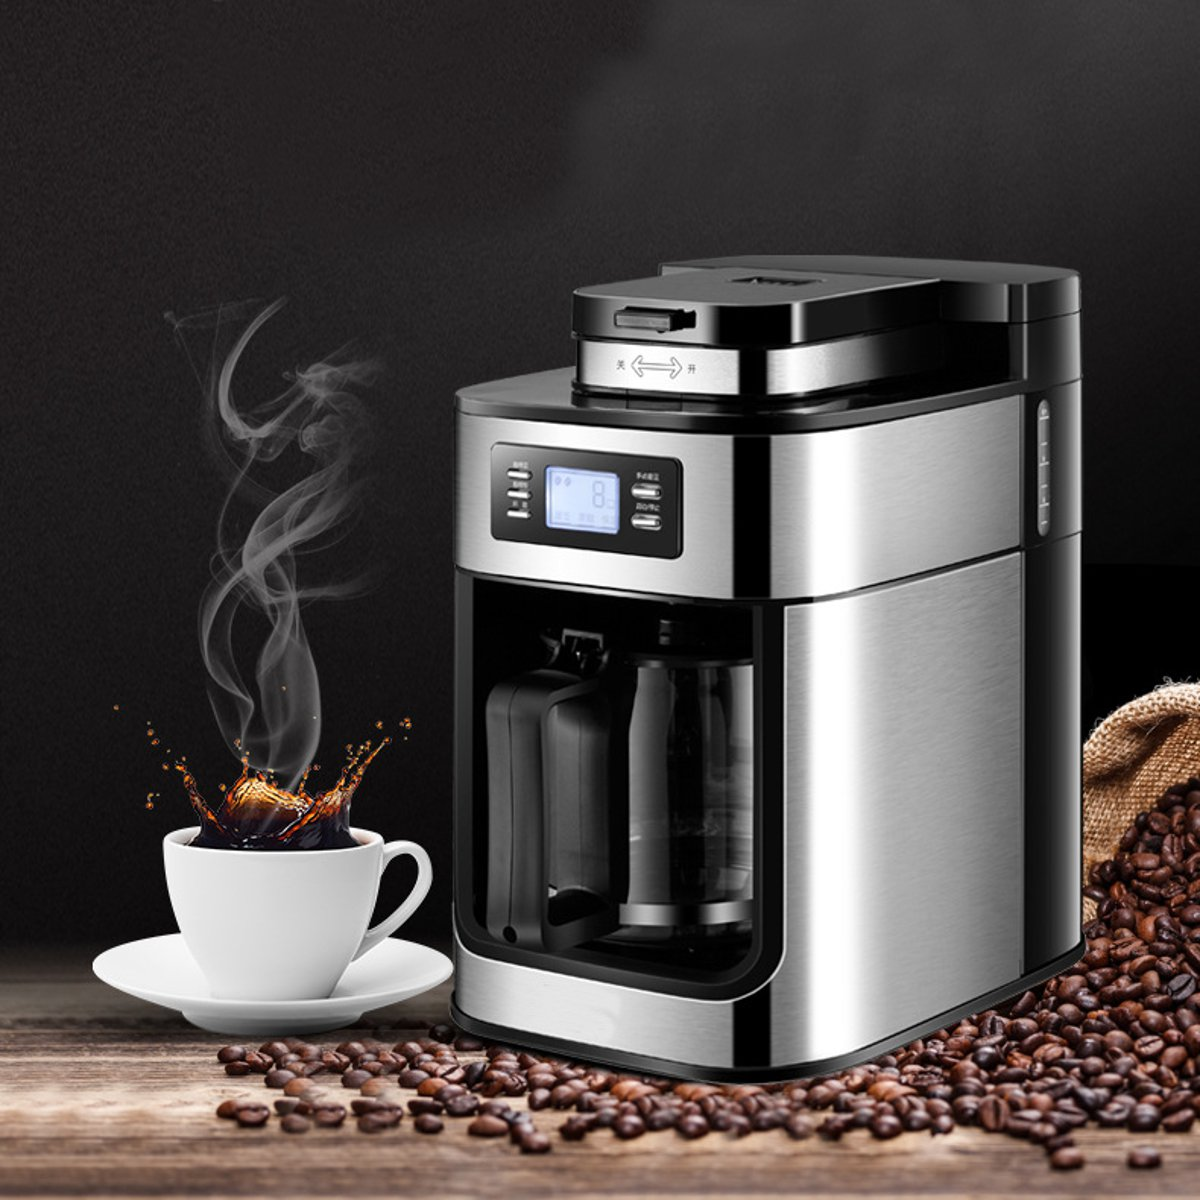 220V 1200ml Electric Coffee Maker Machine Household Fully-Automatic Drip Coffee Maker Tea Coffee Pot Kitchen Appliance 1000W